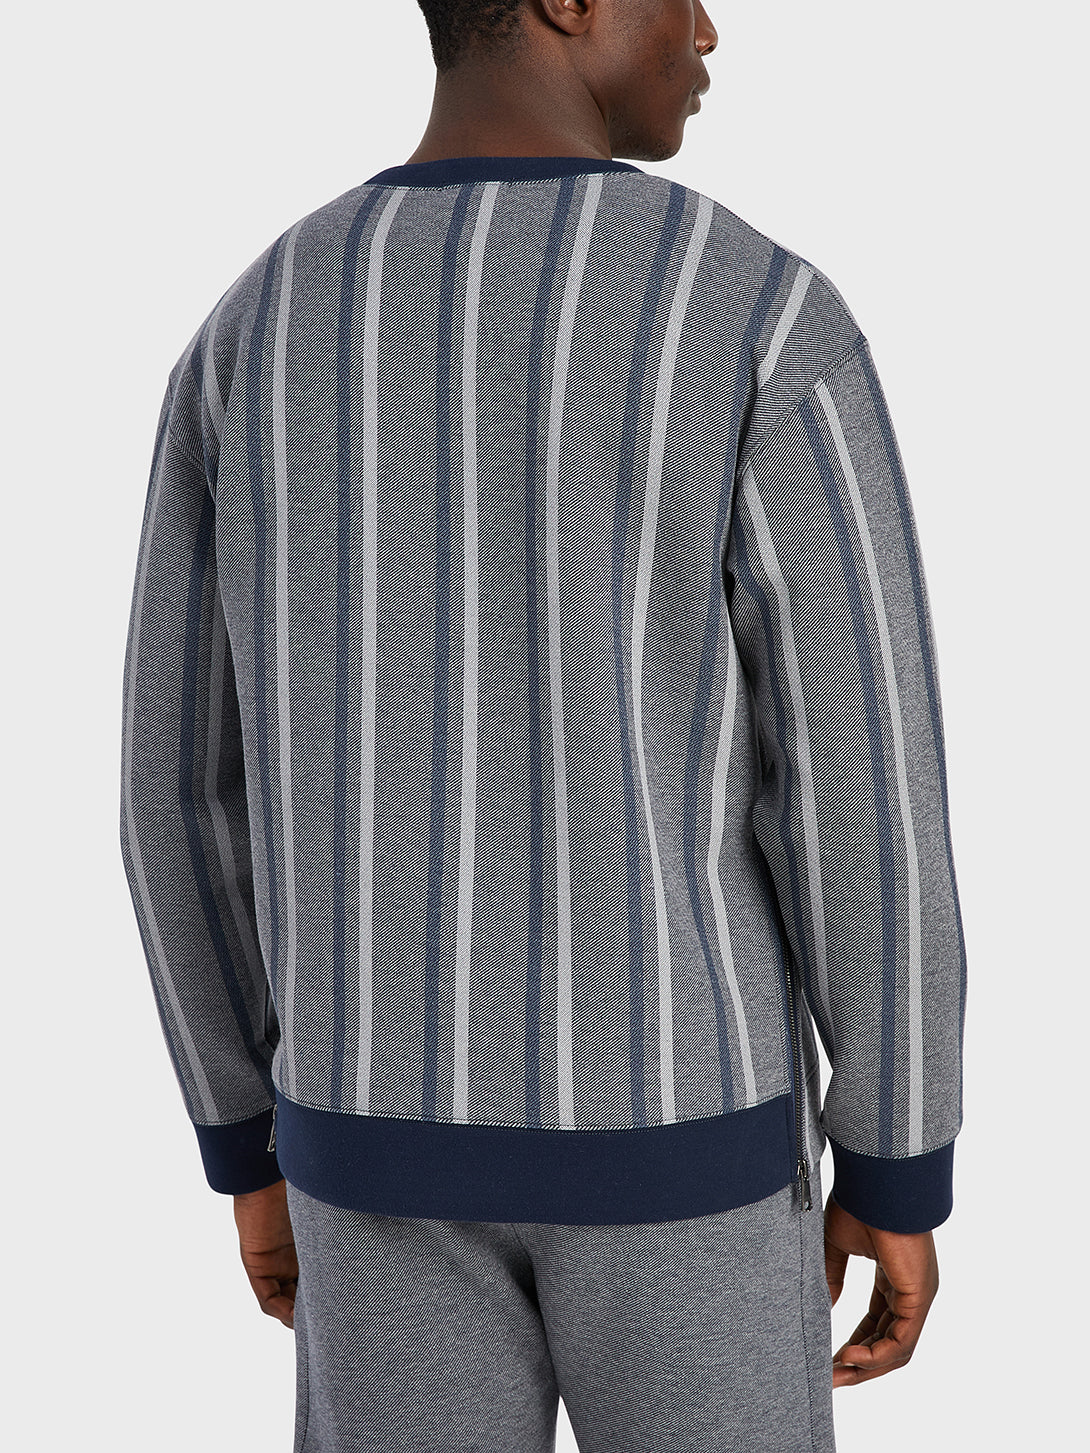 black friday deals ONS Clothing Men's sweater in NAVY STRIPE